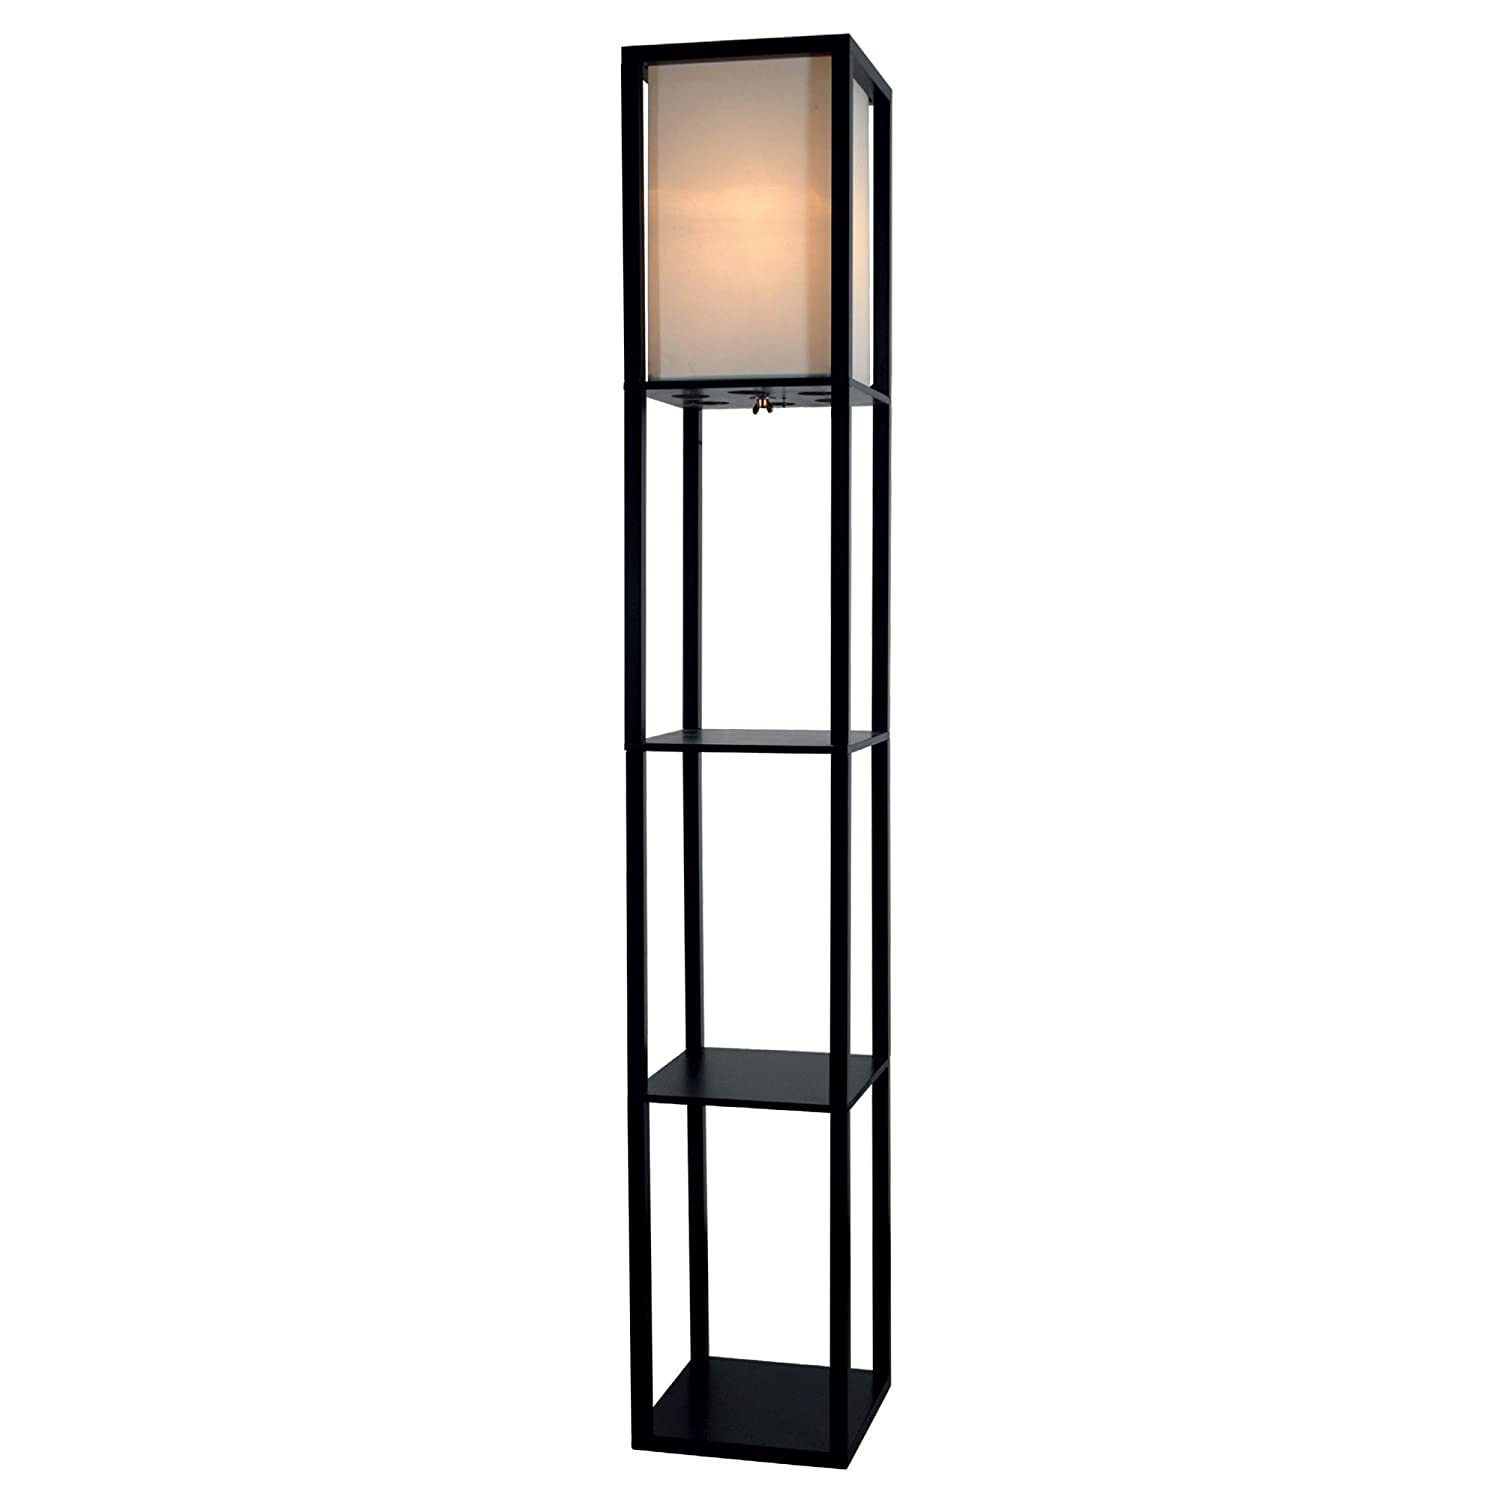 Amazon lamp shades tools home improvement - Light Accents Wooden Floor Lamp With White Linen Shade Black Amazon Com